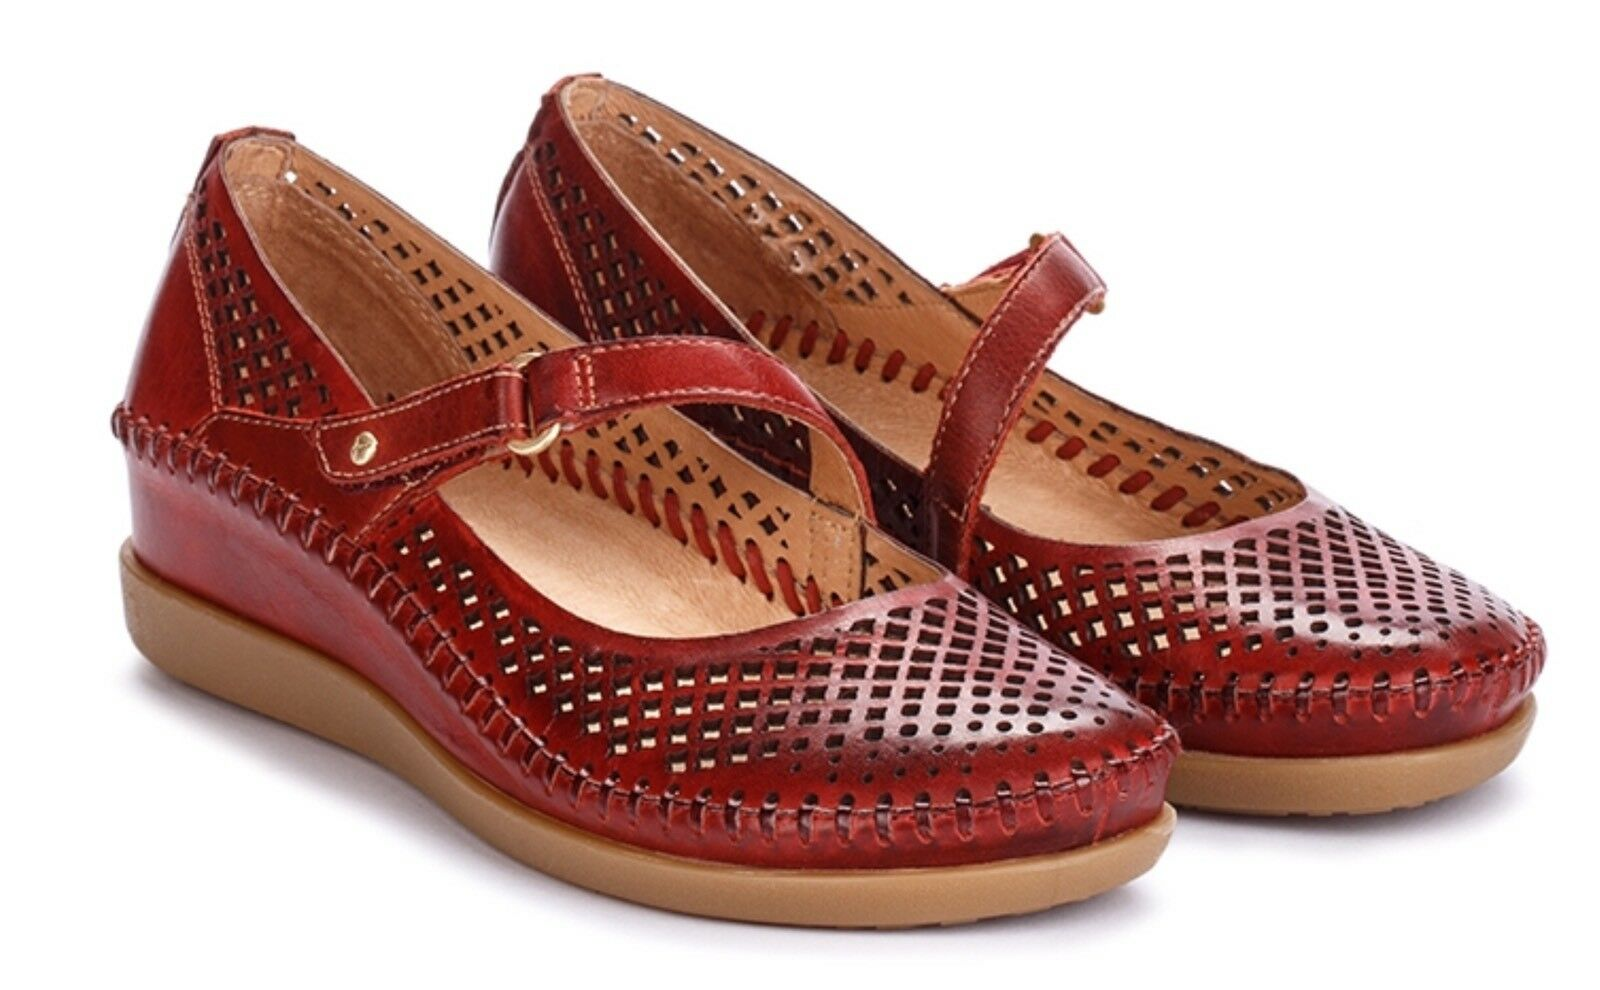 Pikolinos Maryjane Style Style Style shoes, Comfort And Breathable, Sandia Brown Leather, 38 b81494